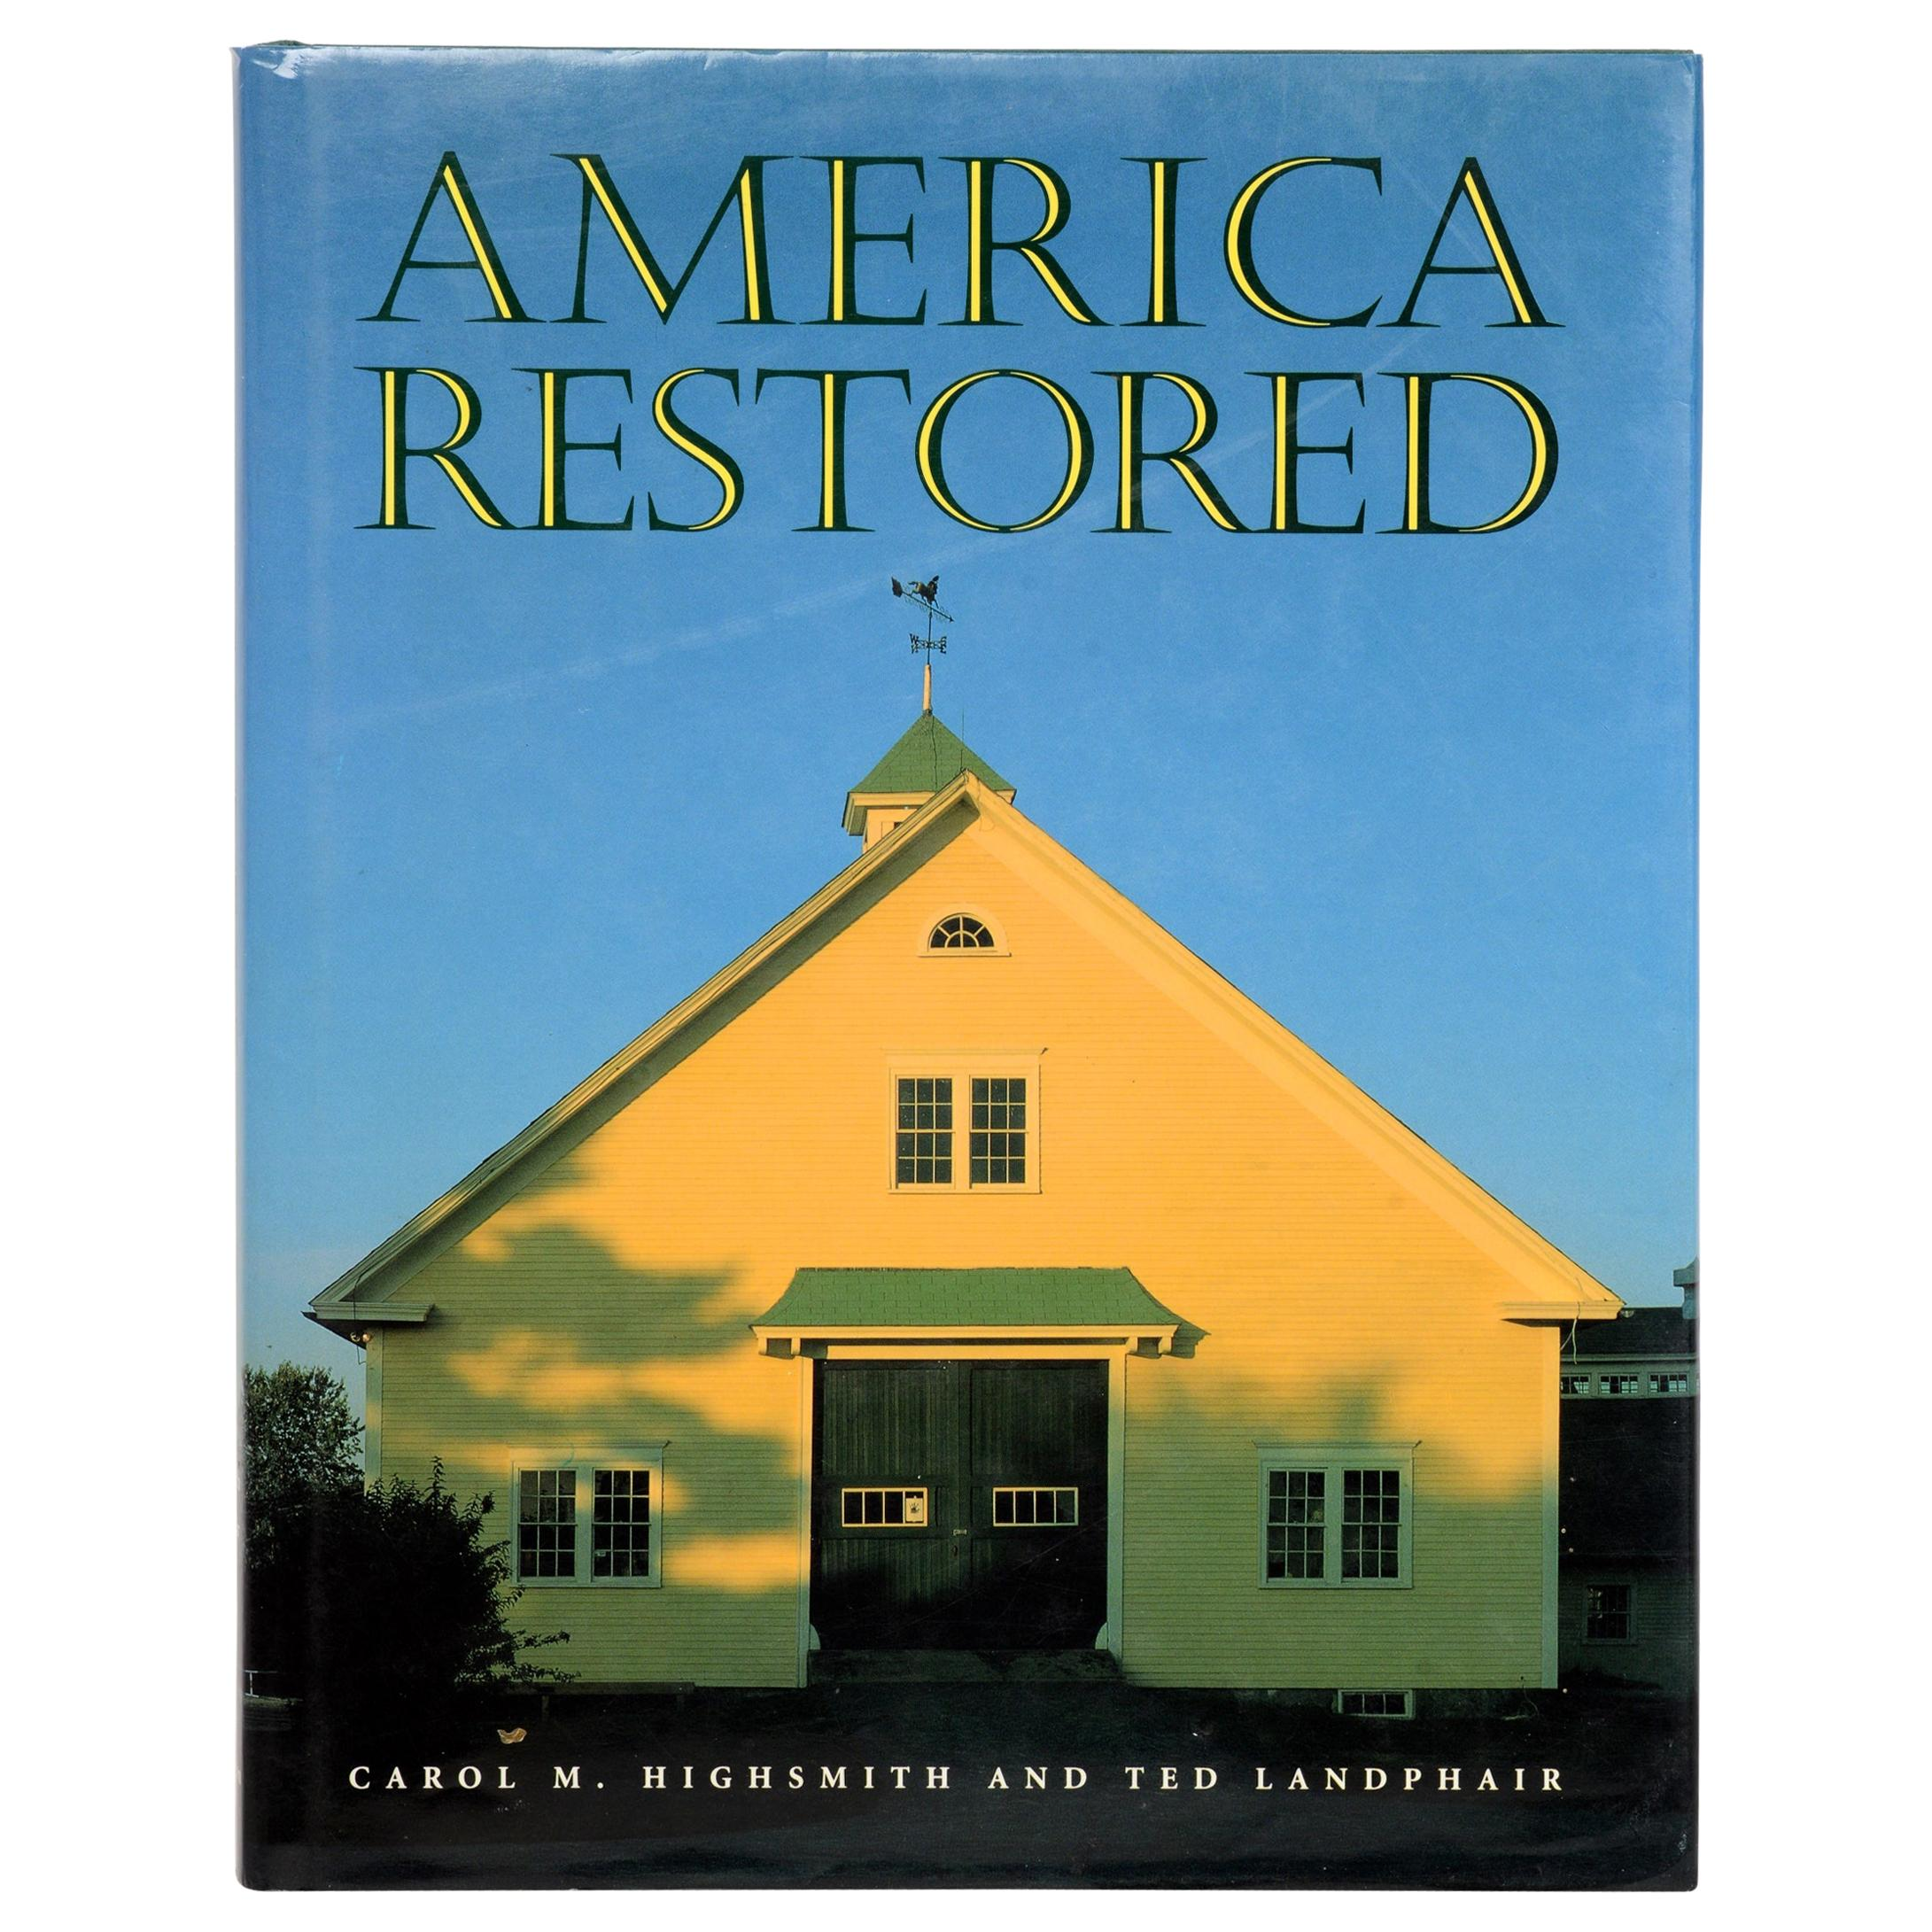 America Restored by Carol M Highsmith and Ted Landphair